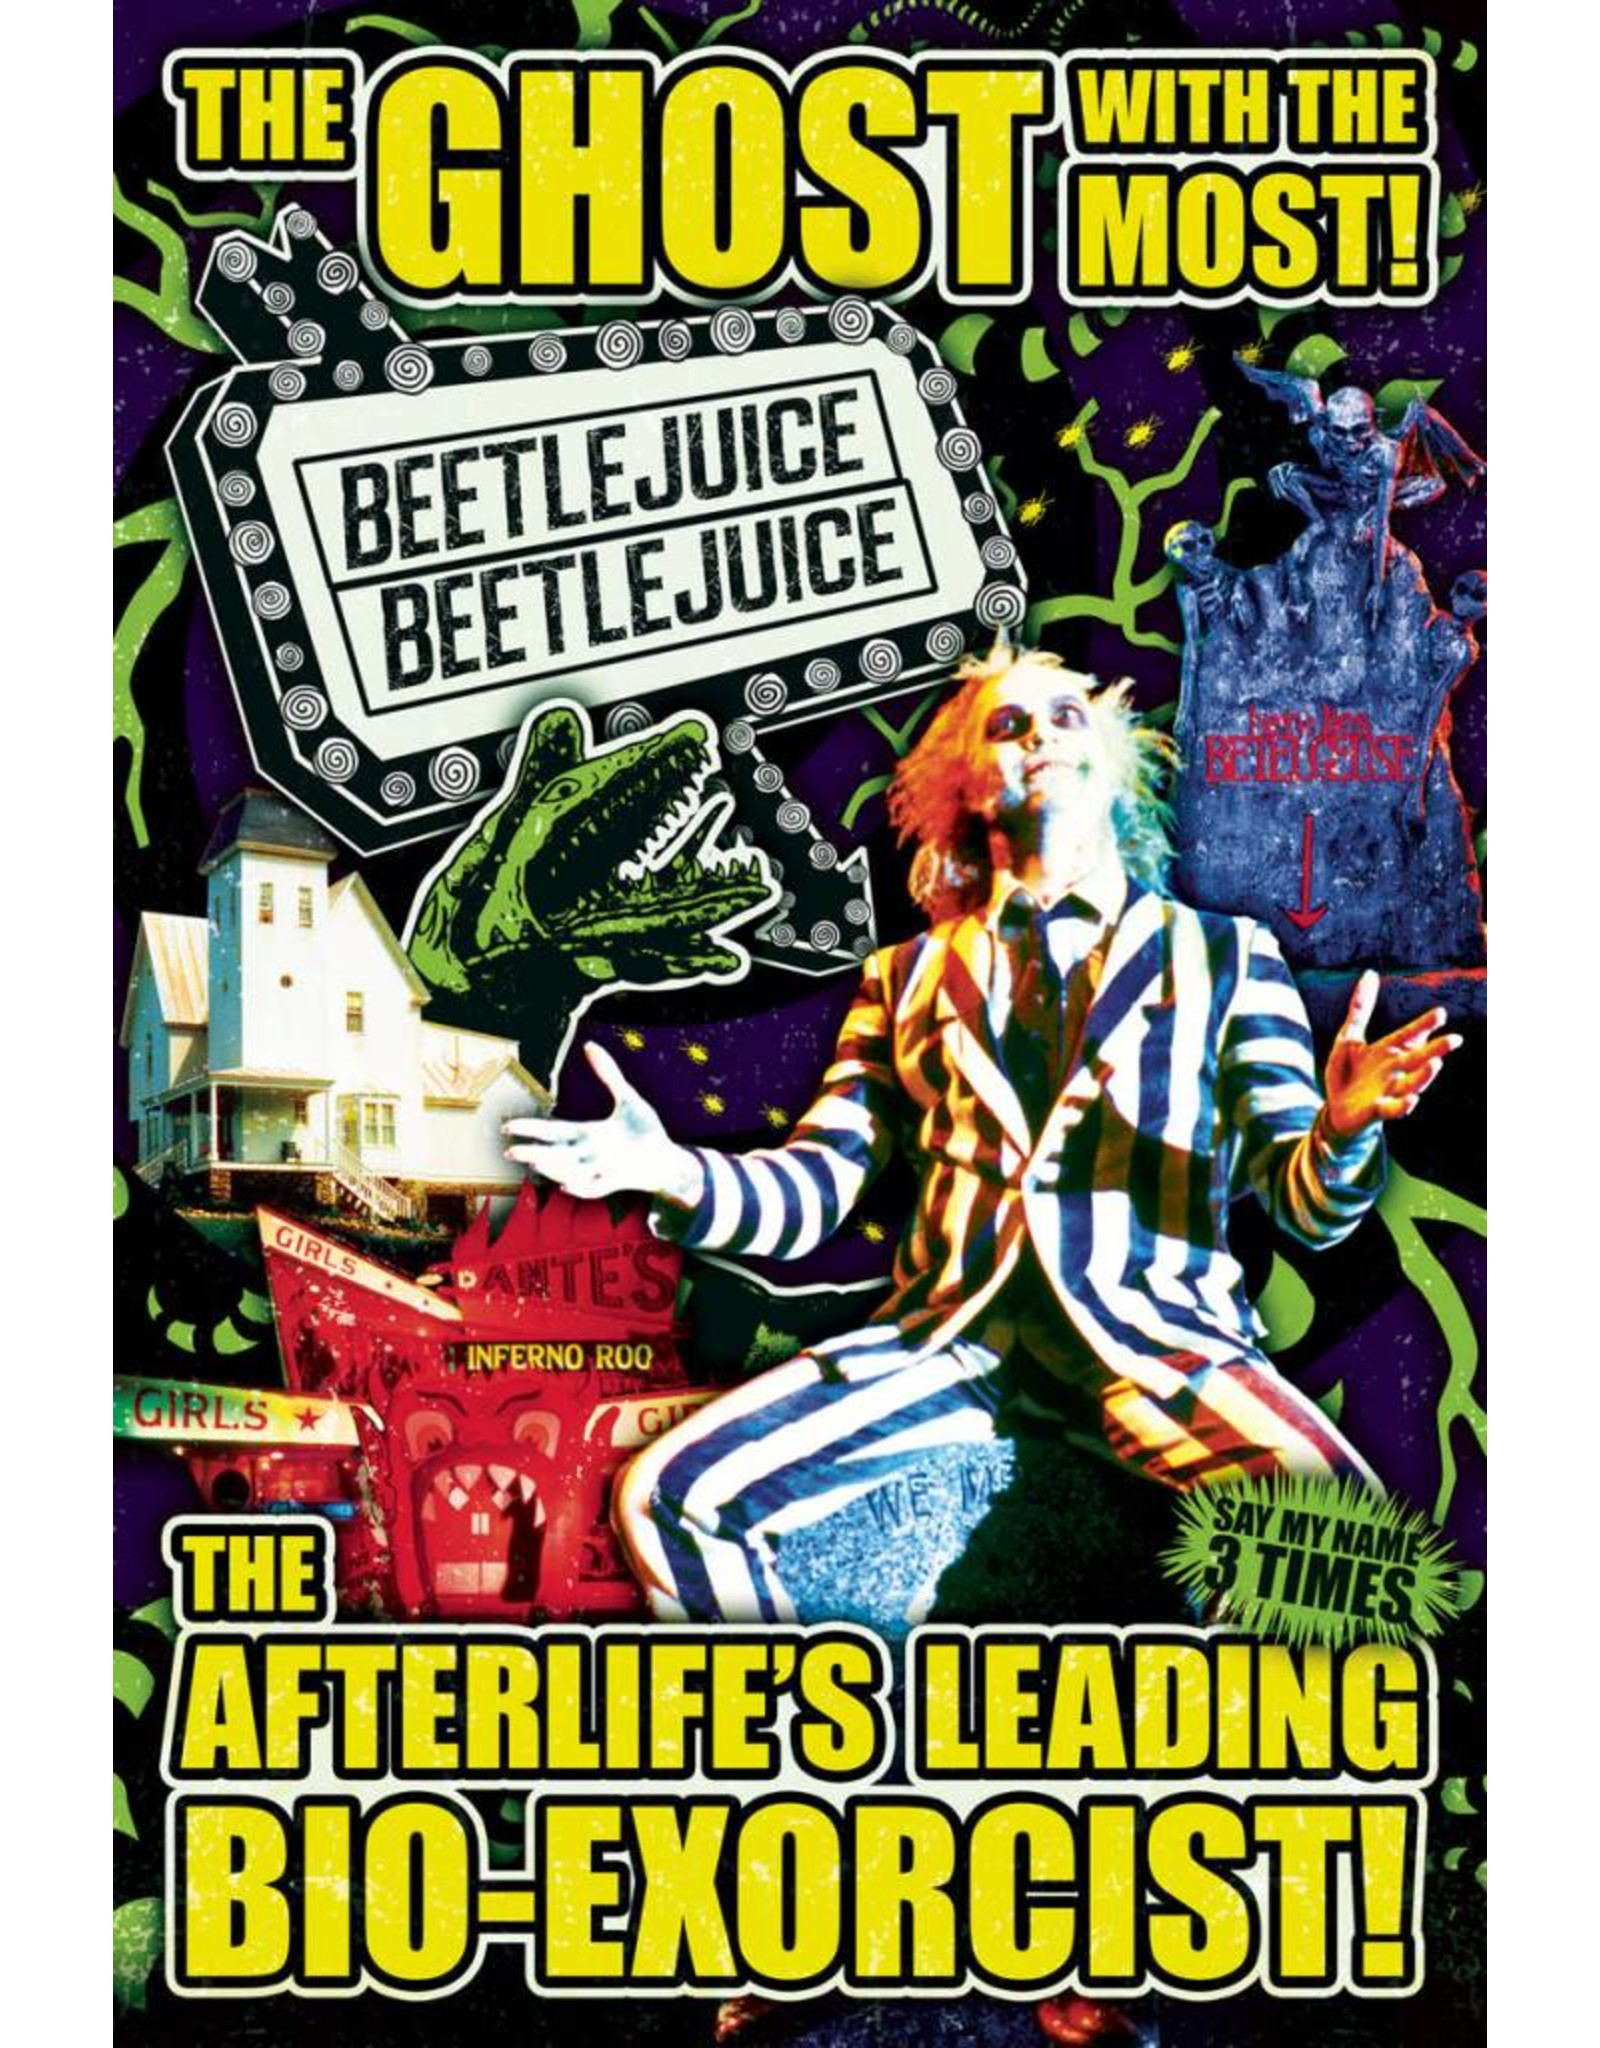 Posters Wholesale Poster - Beetlejuice Ghost With the Most